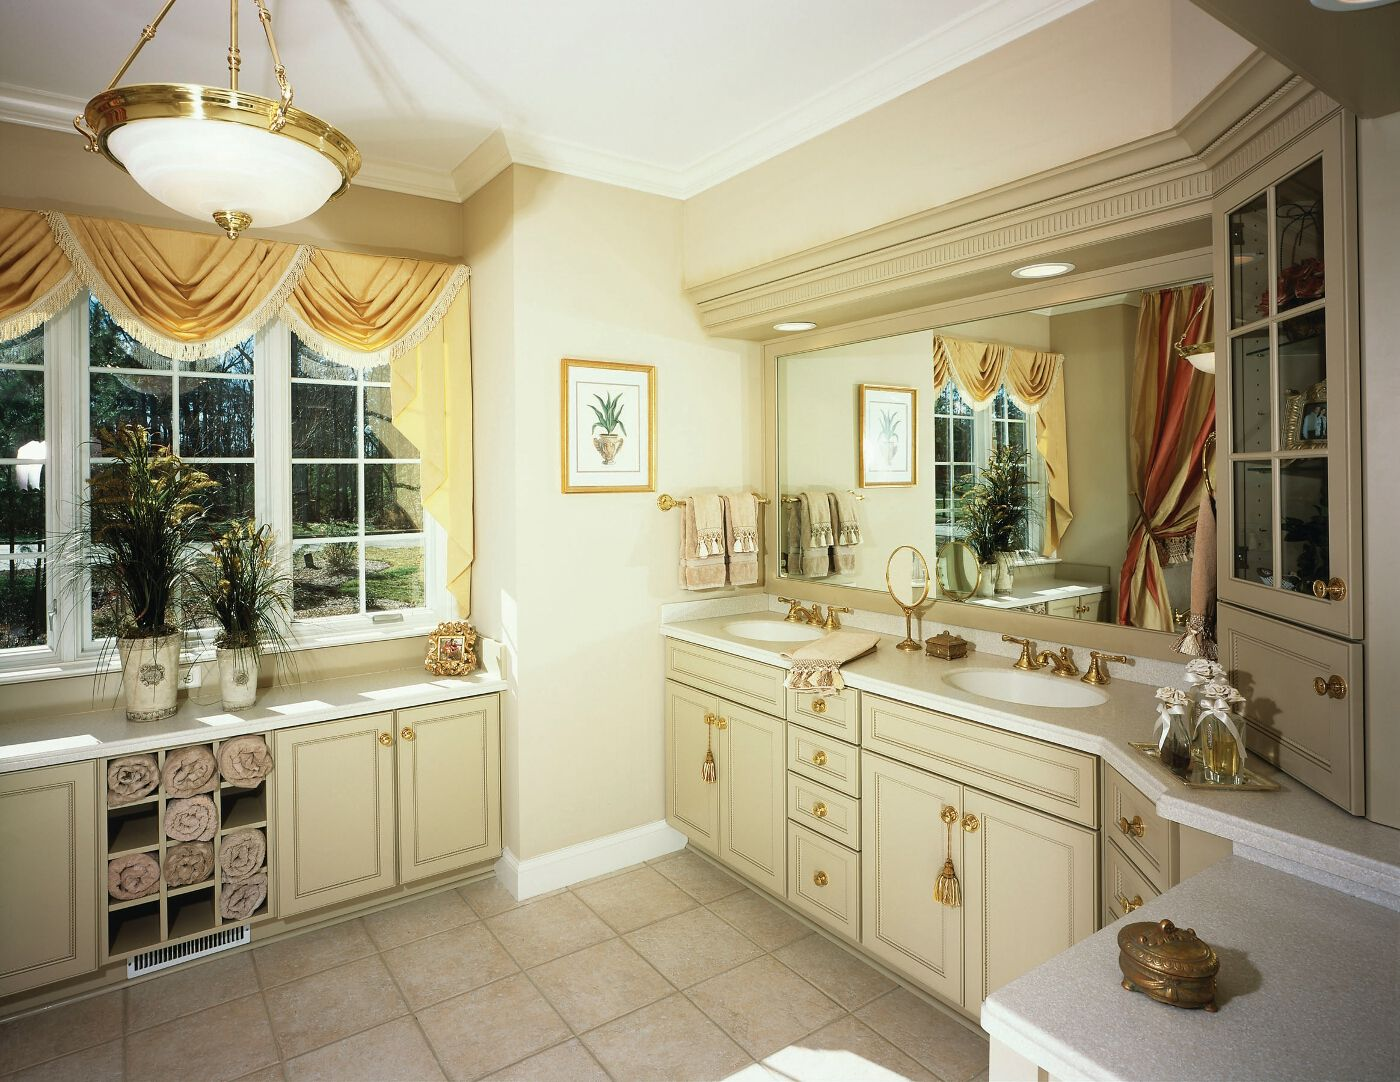 Custom Wood Products Cwp Cabinetry Bathroom Gallery Cabinetry Cabinet Custom Wood